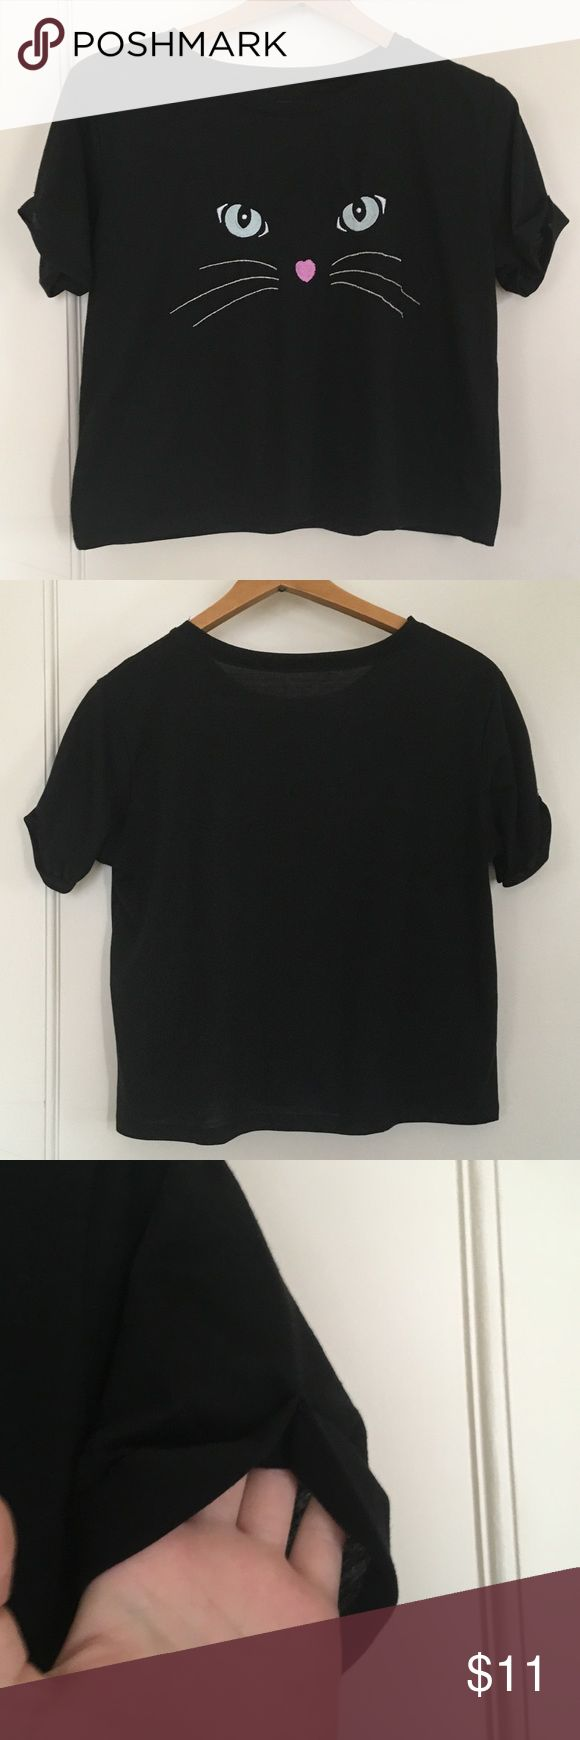 REDUCED🔥 Black Cat Crop Top Black crop top with an embroidered cat face on it. I got it from SheIn a while back and when it arrived, I noticed the care tag had been cut off so I can't tell you what material it is. This is shown in the last image. I believe it was listed as OS but it fits like a S/M. The stitching is okay, but not amazing. Reasonable offers welcome :) SheIn Tops Crop Tops